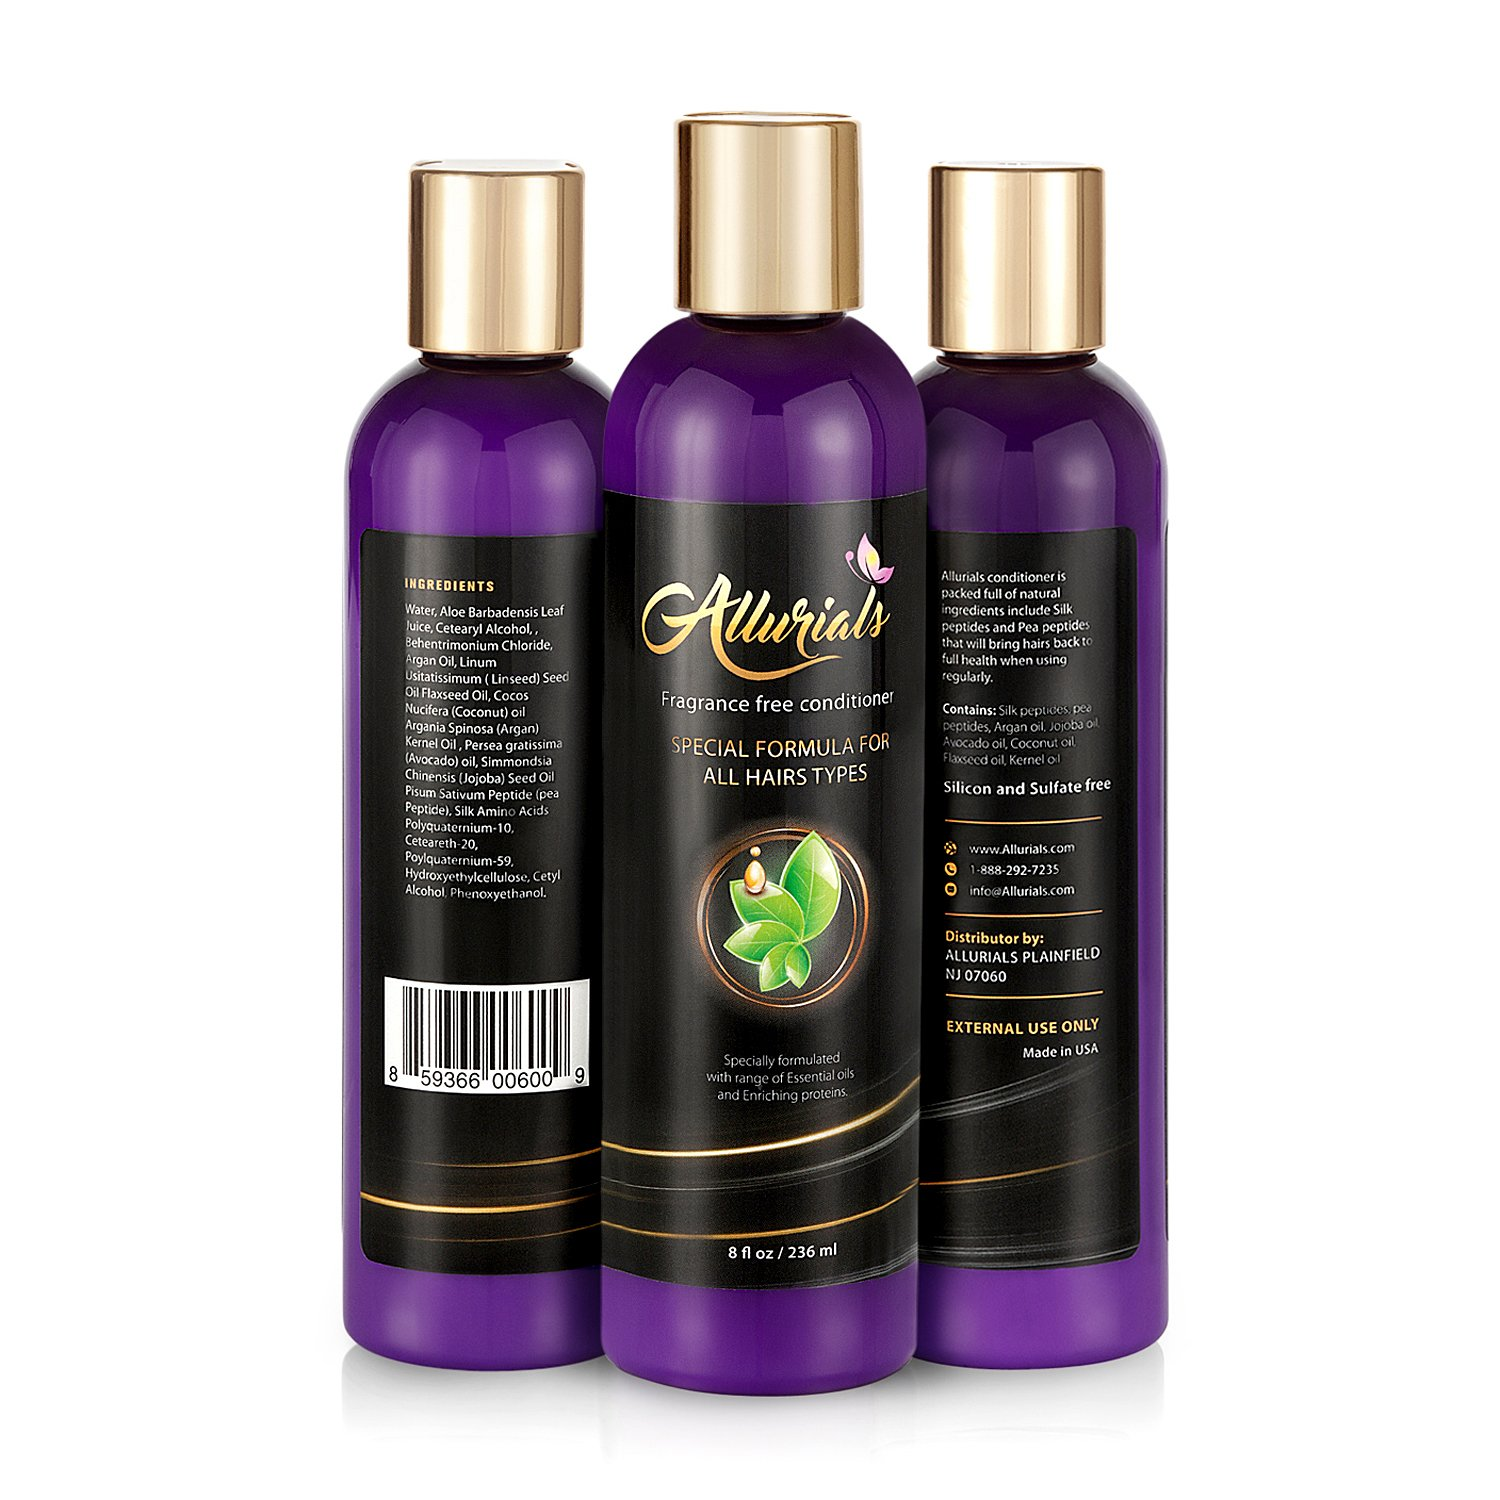 Allurials Fragrance Free Hair Conditioner, Natural Hair Treatment for Dry Damaged and all Hair Types, Safe for Color Treated Hair, Sulfate Free, Silk and Pea Peptides, Argan Jojoba Avocado and Coconut